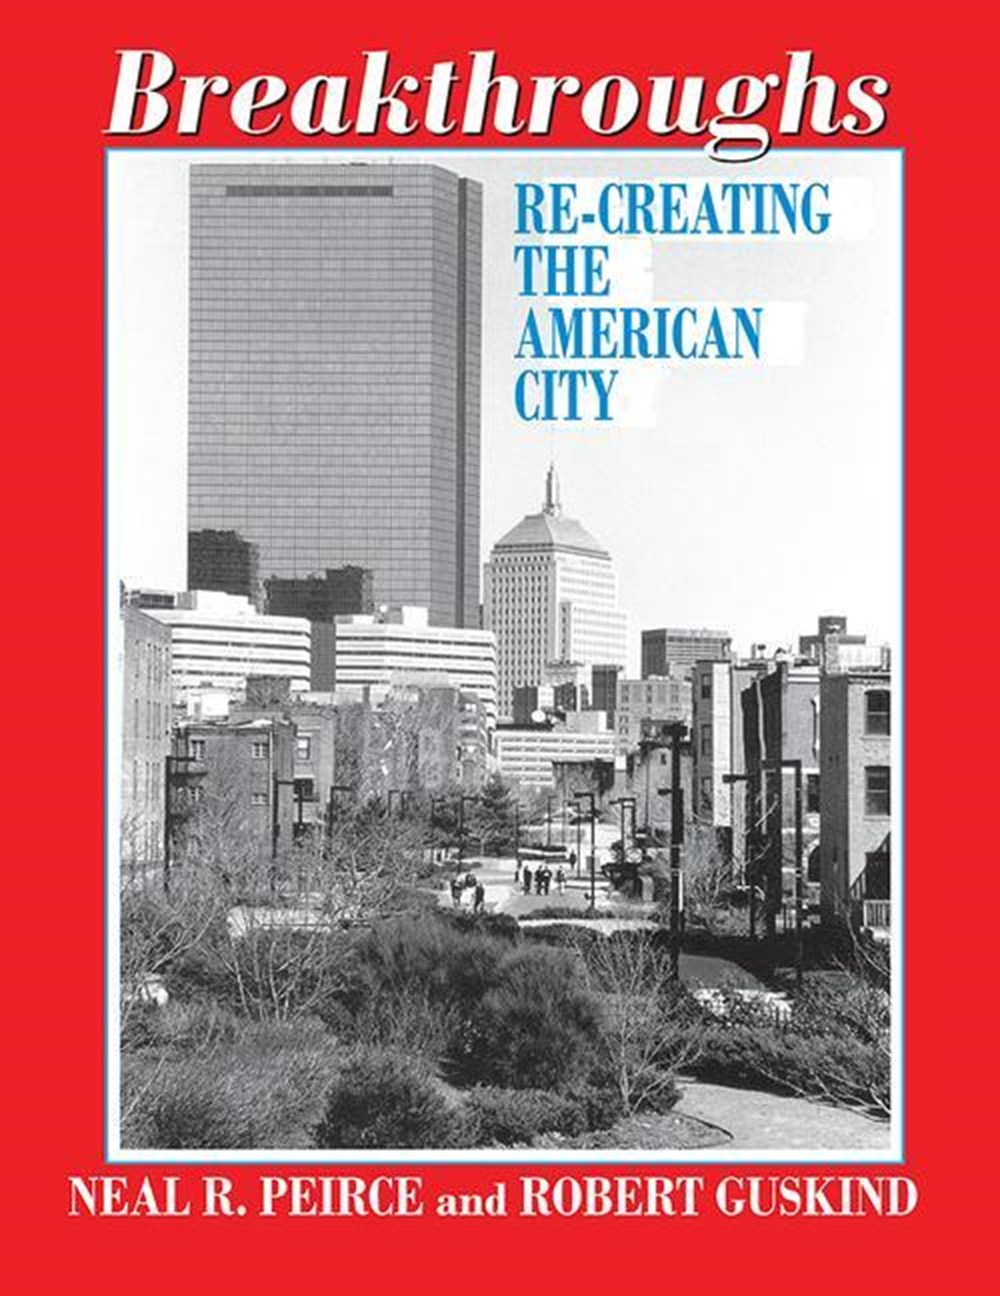 Breakthroughs Re-Creating the American City